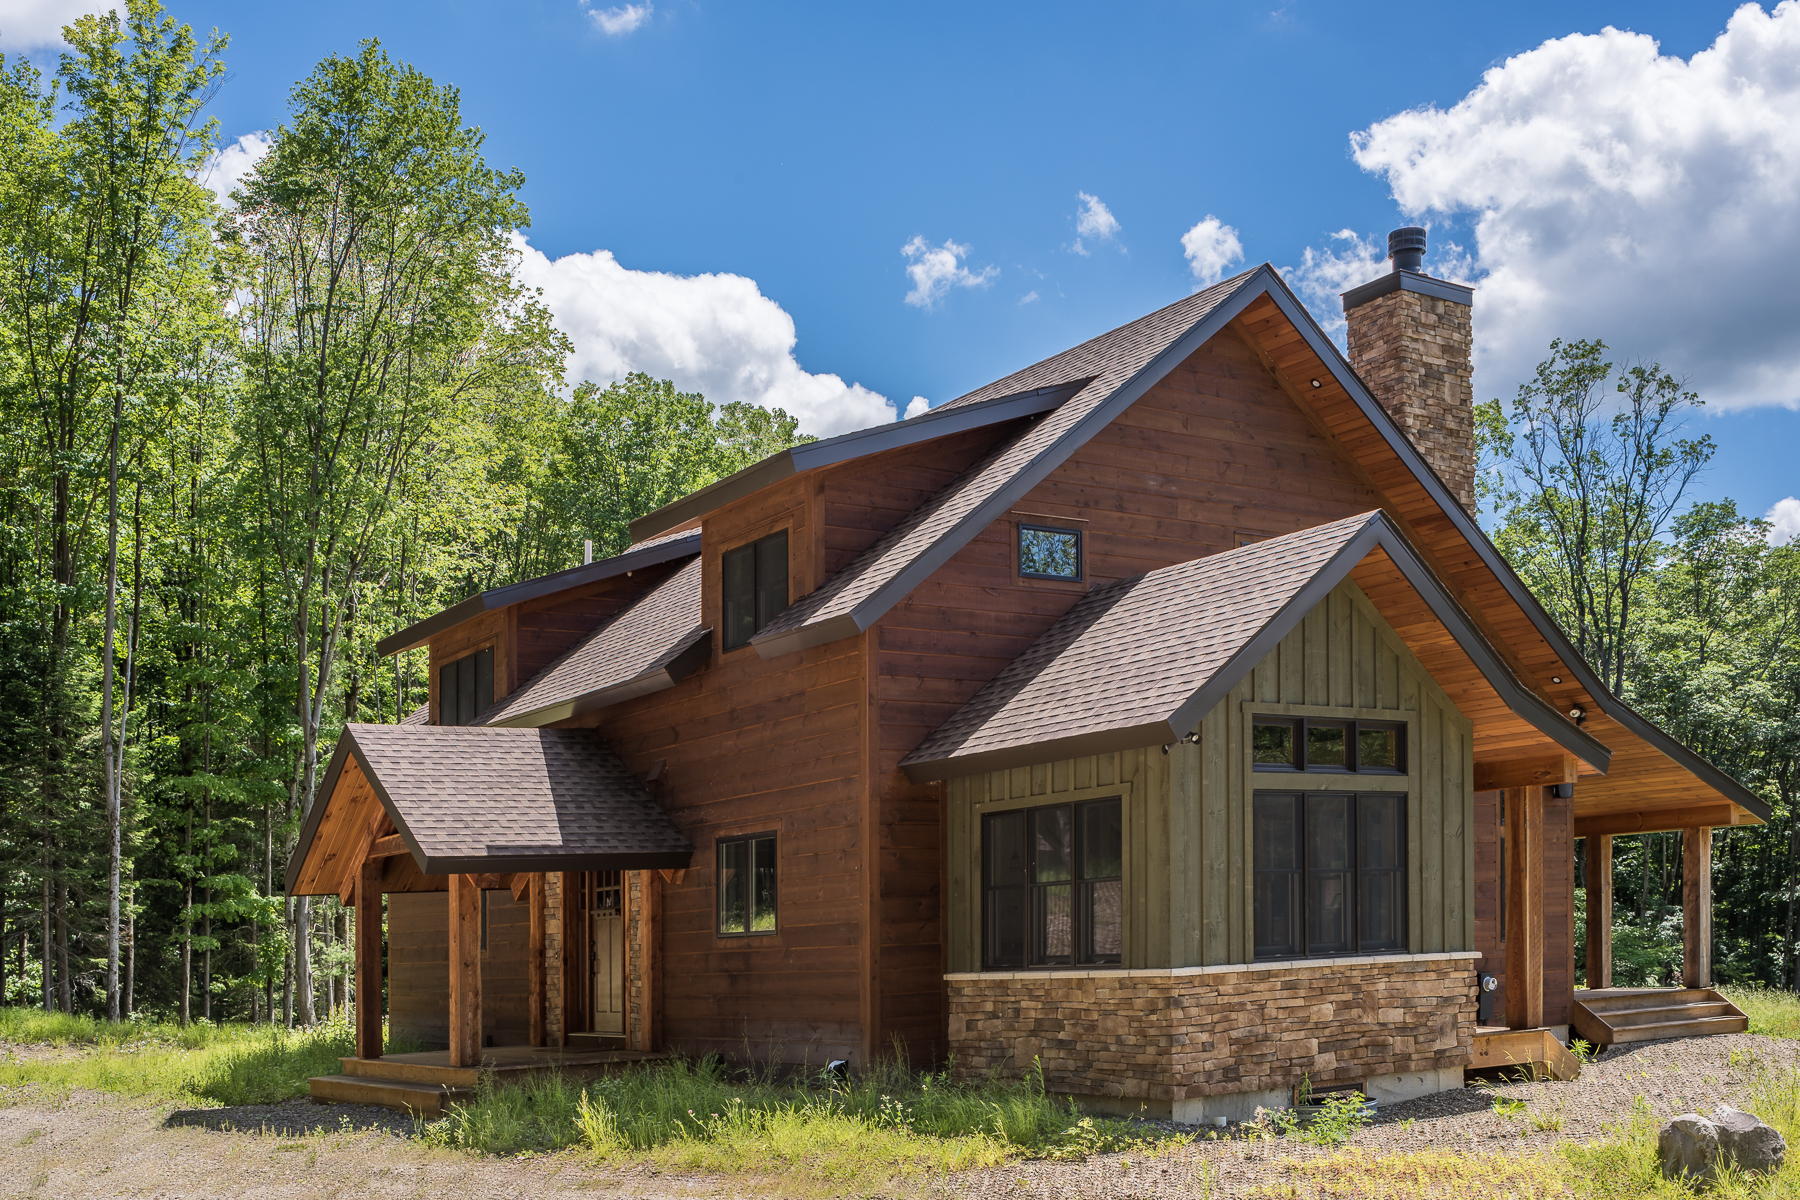 Single Family Home for Sale at Custom Mountain Retreat 6405 Witch Hollow Rd Ellicottville, New York 14731 United States